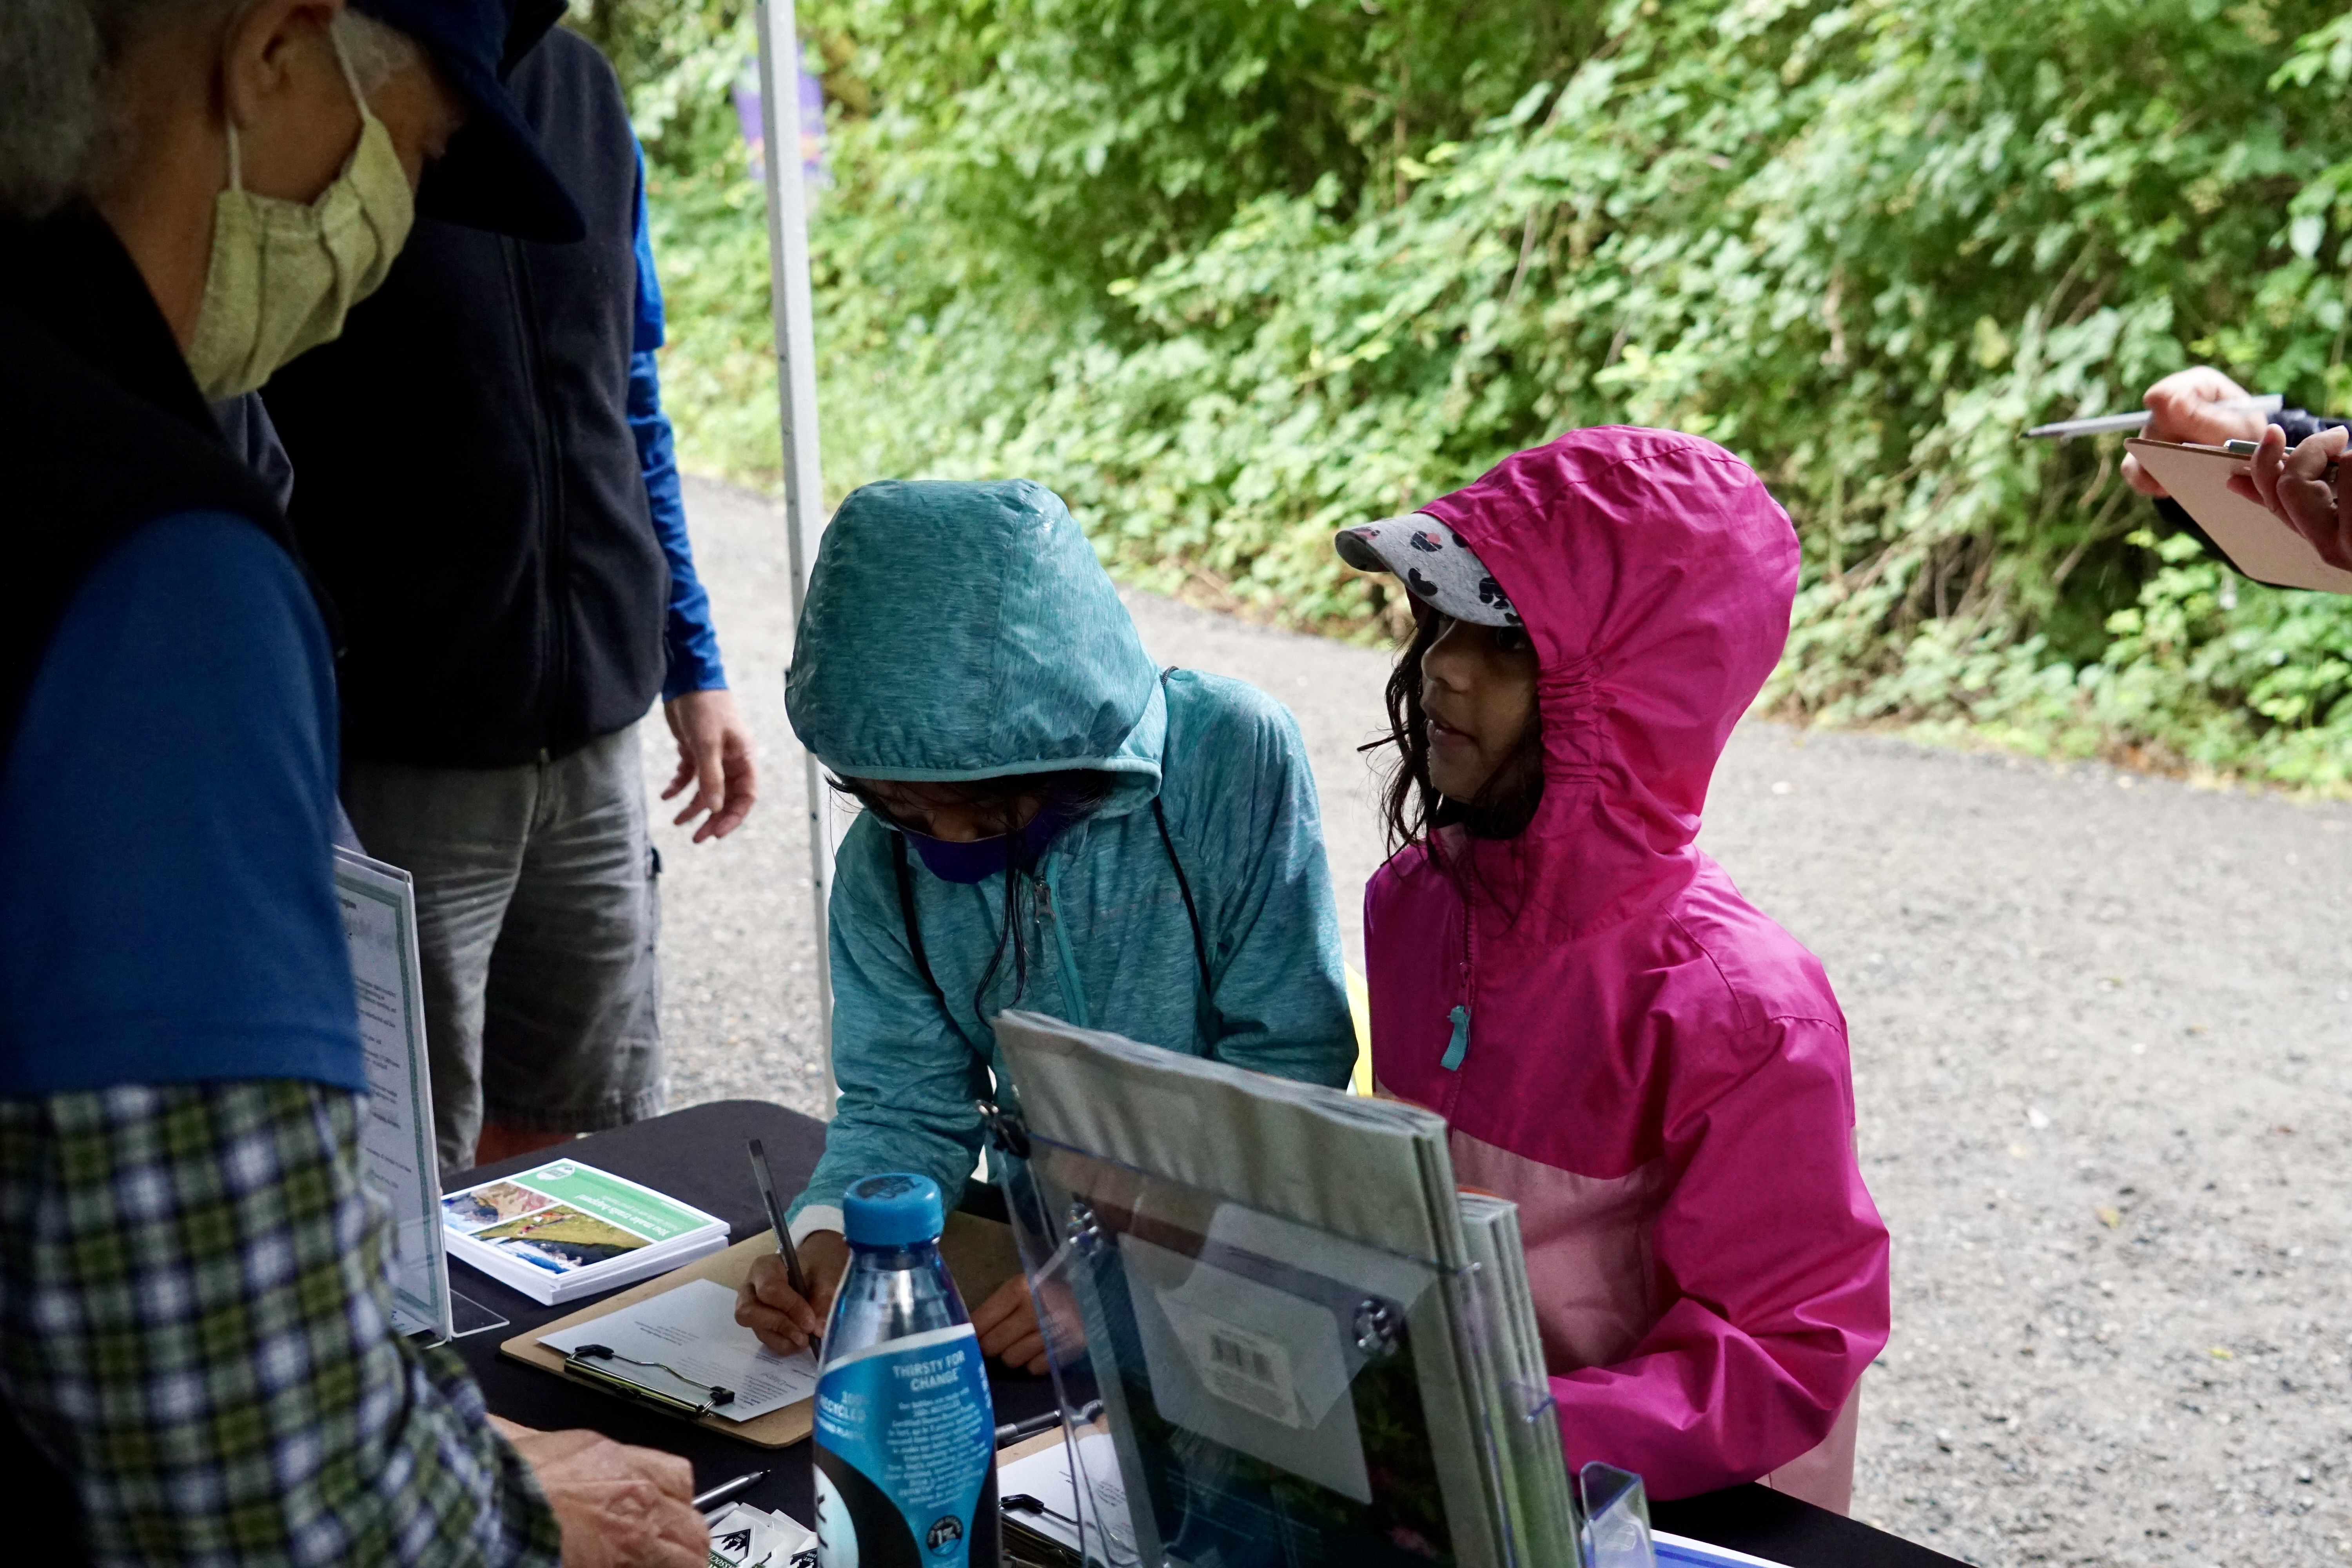 Two young children wearing rain jackets sign postcards in support of trails.